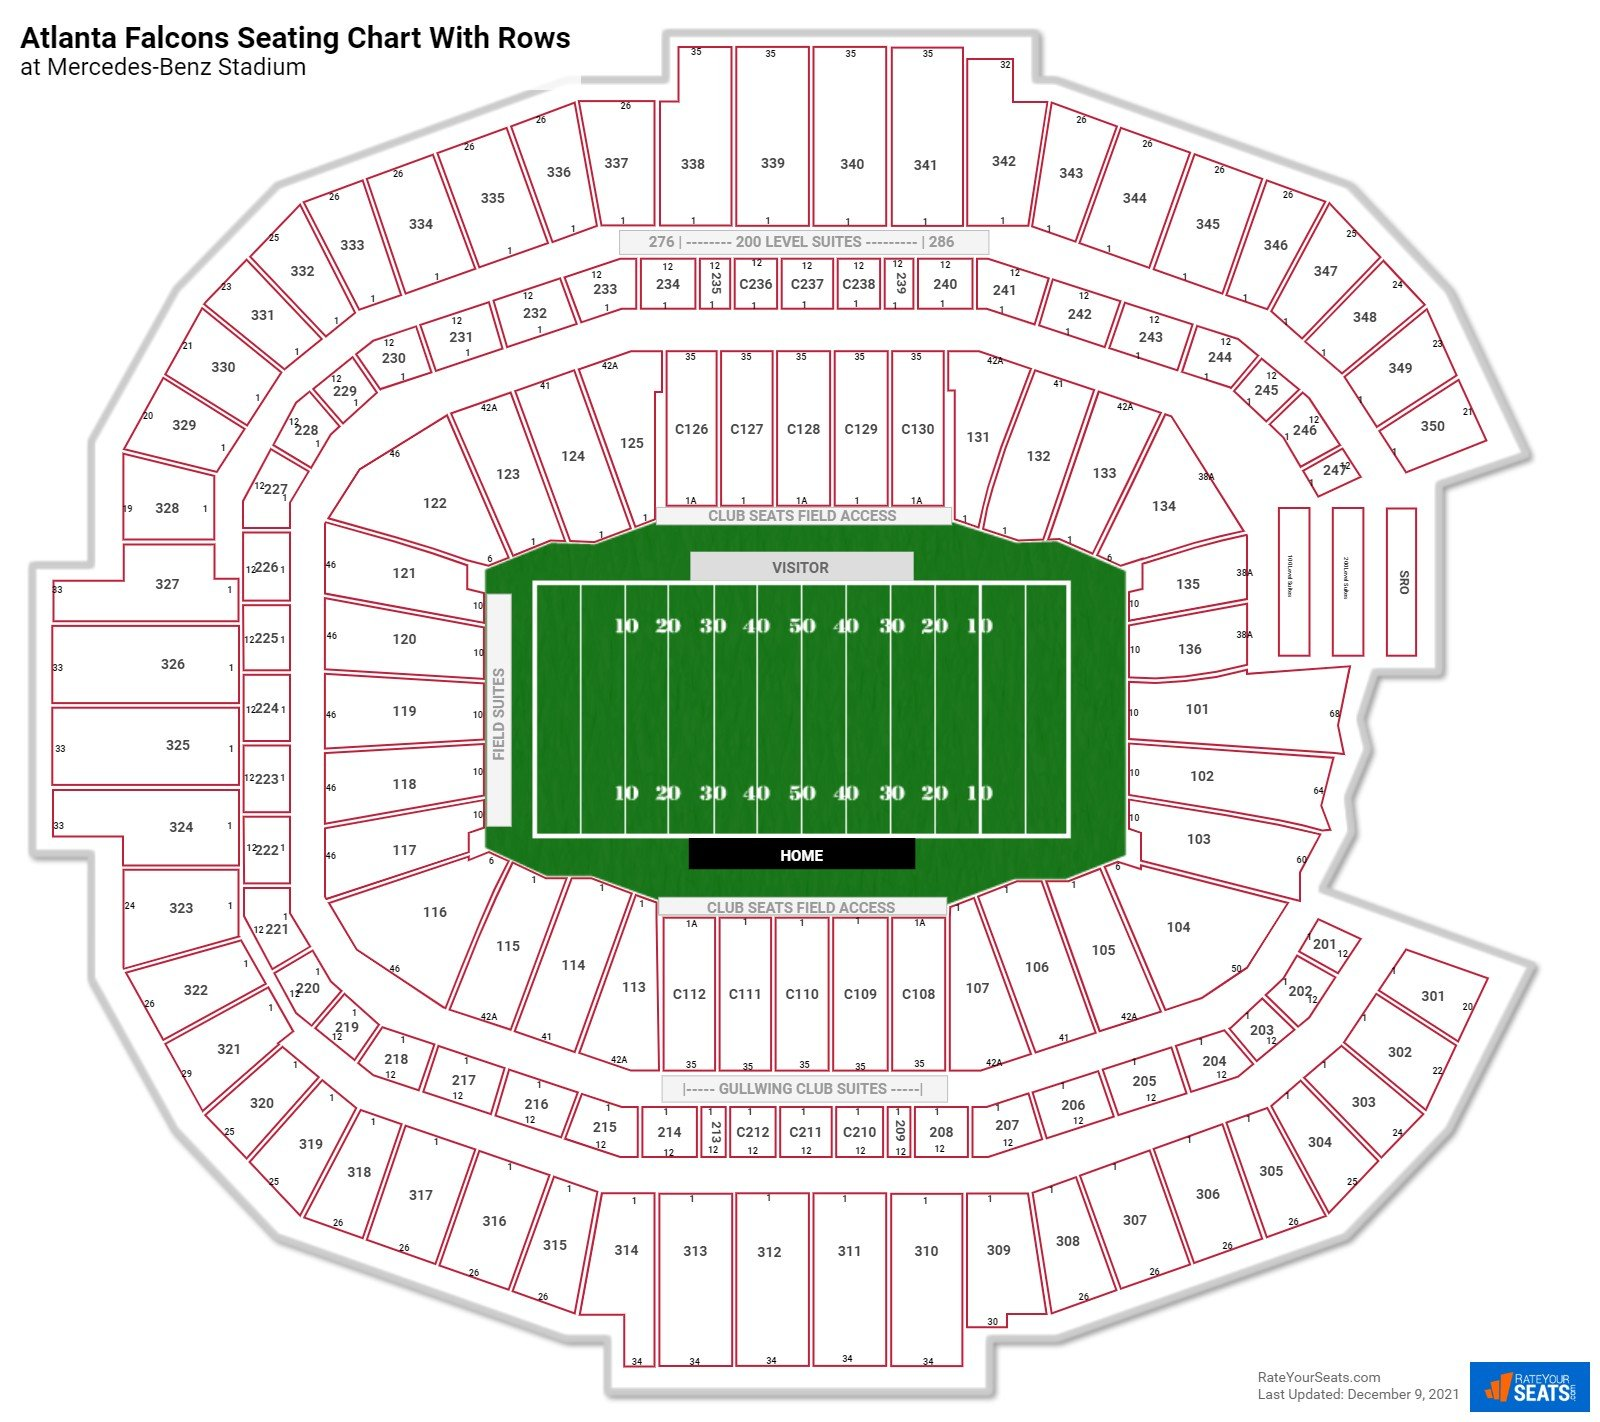 Mercedes-Benz Stadium seating chart with rows football